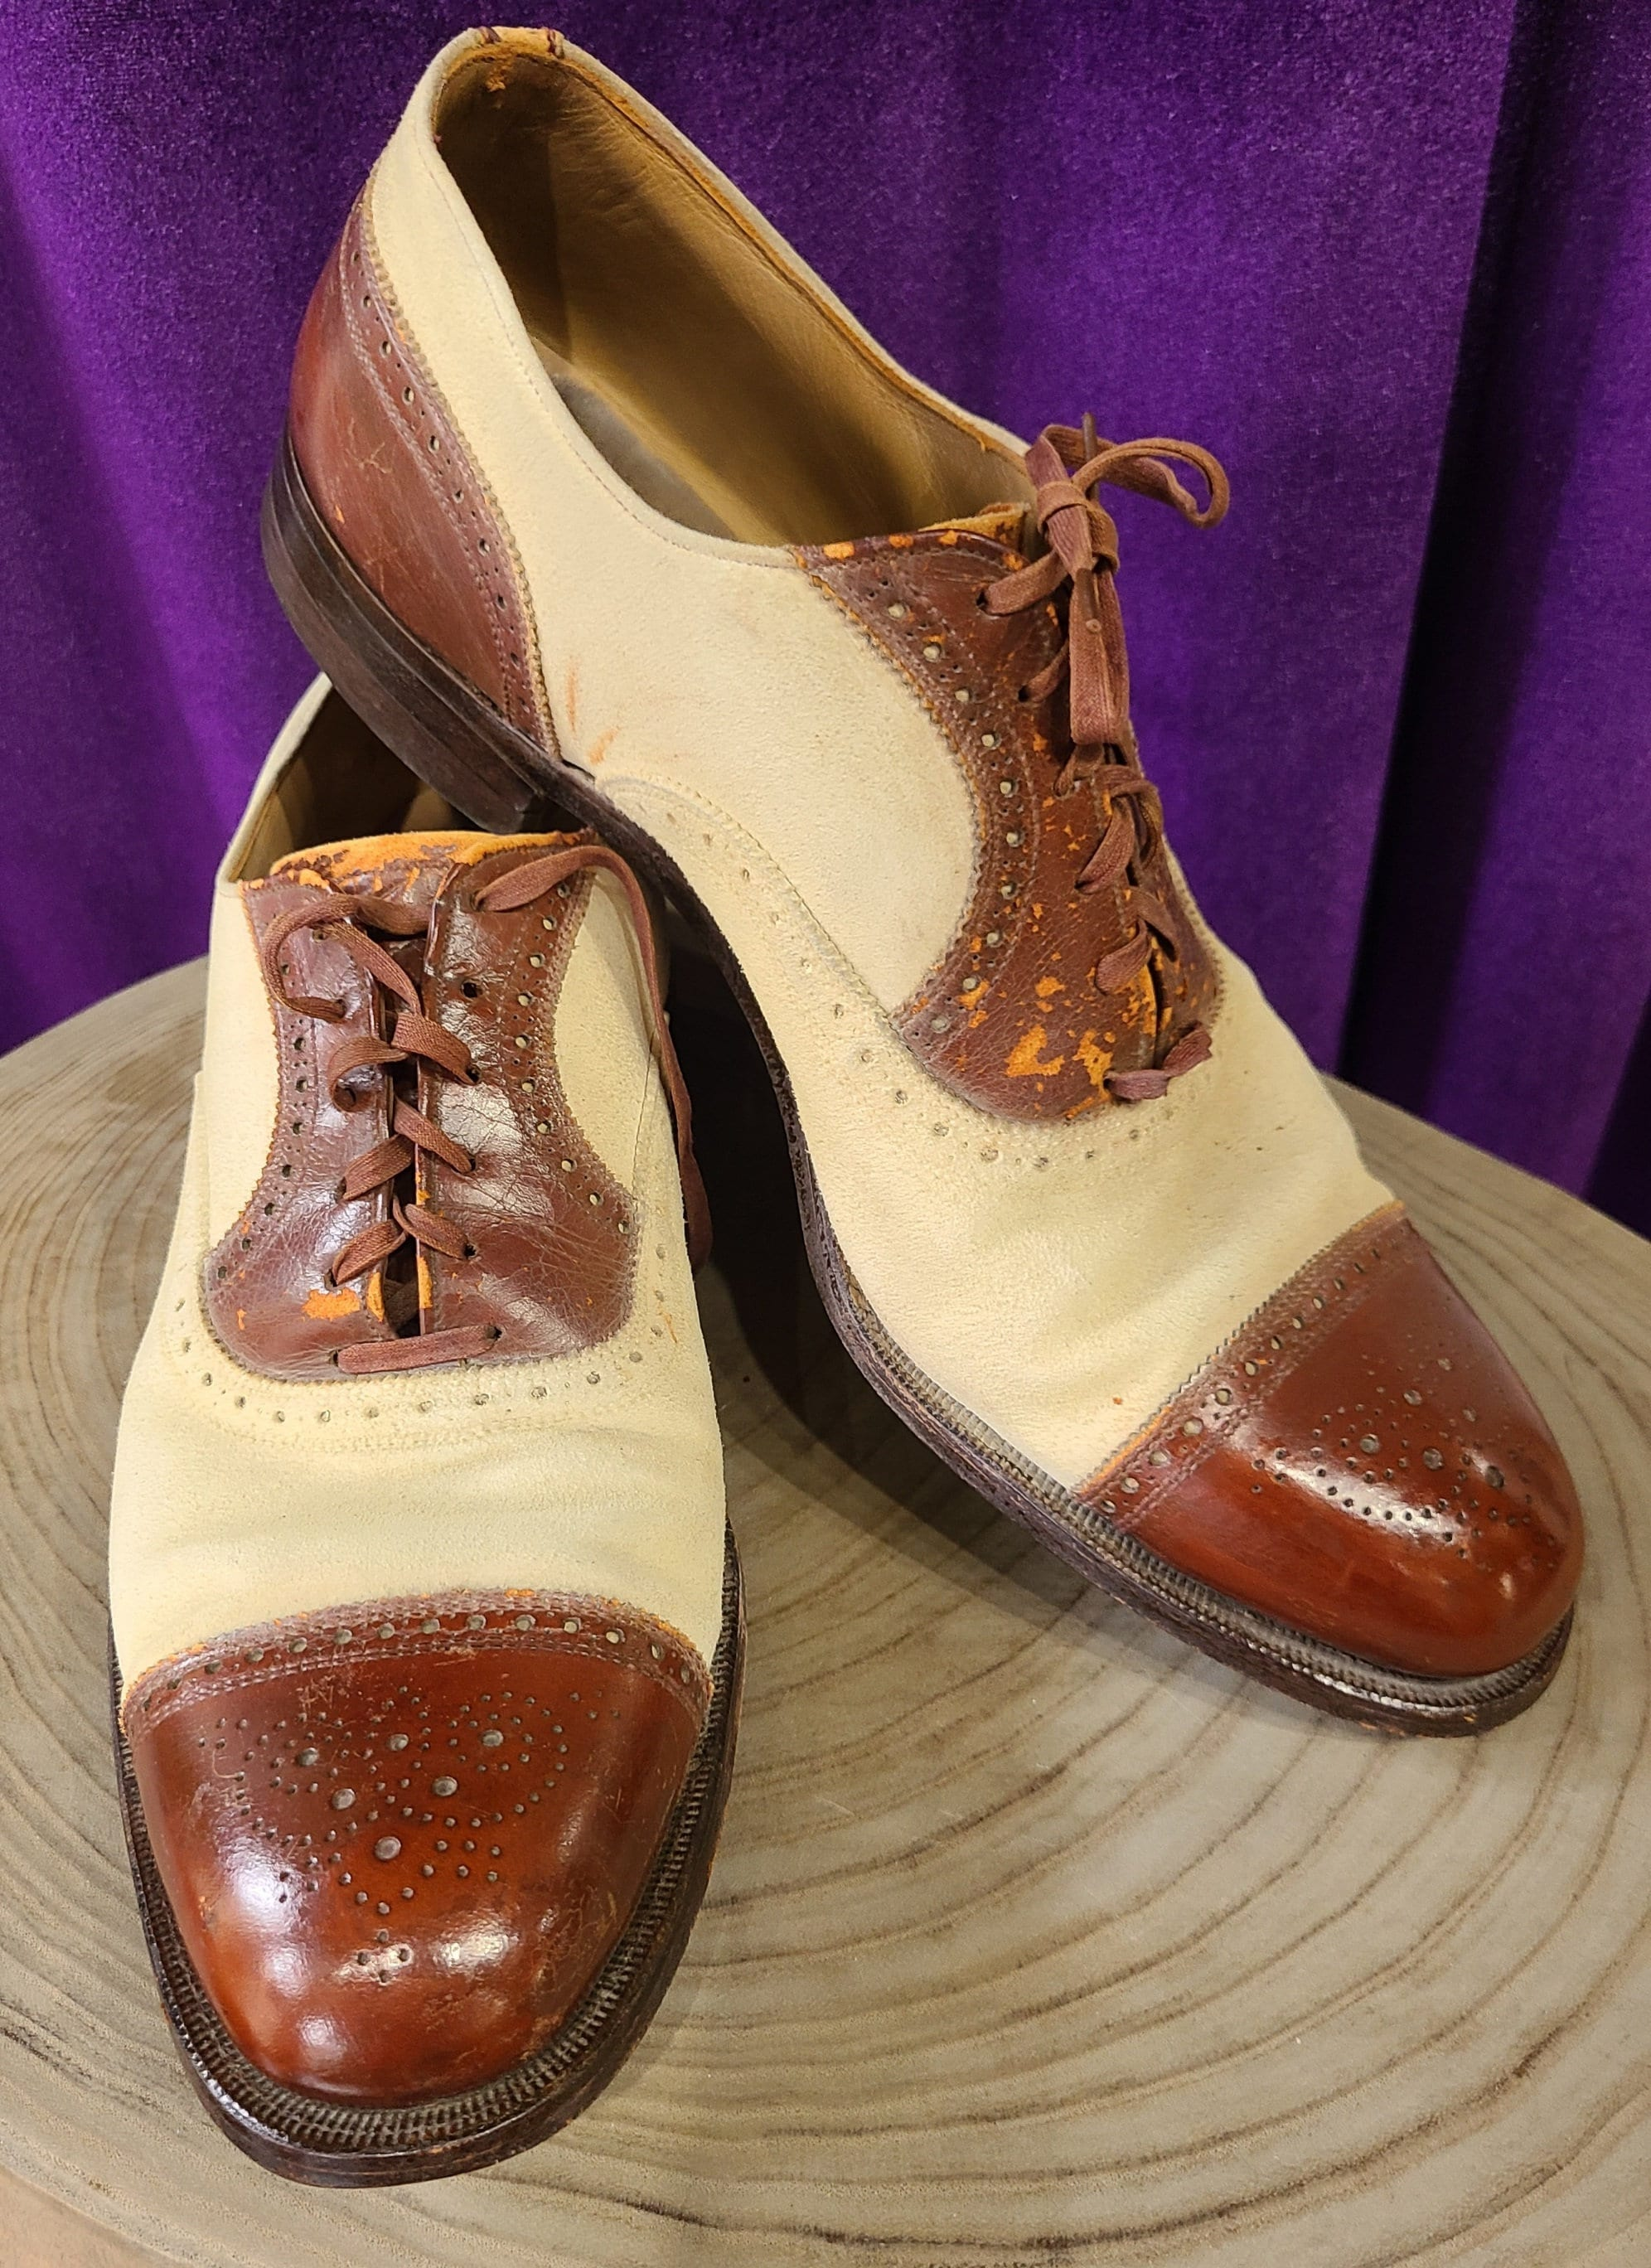 New 1930s Mens Fashion Ties Vintage Pair Of Brown Leather  Cream Suede Wing Tip Oxford Spectator Shoes, Bostonian Challengers, Ca 1930S $10,000.00 AT vintagedancer.com